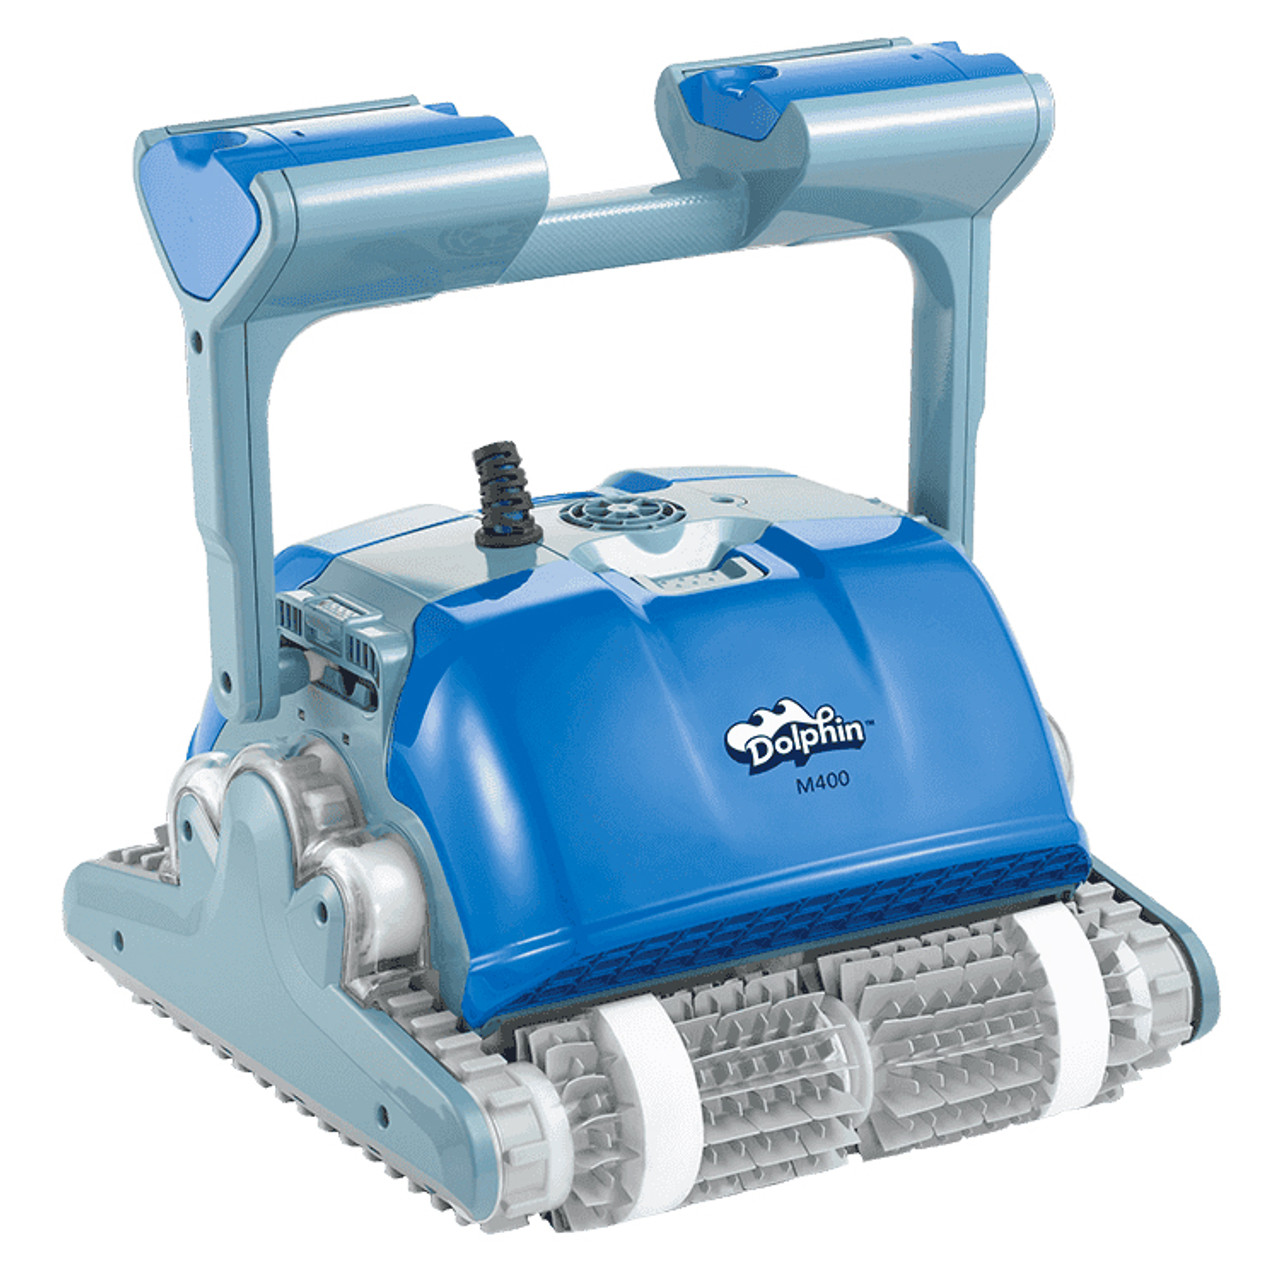 Dolphin M400 Robotic Automatic Pool Cleaner Westwood Pool Company